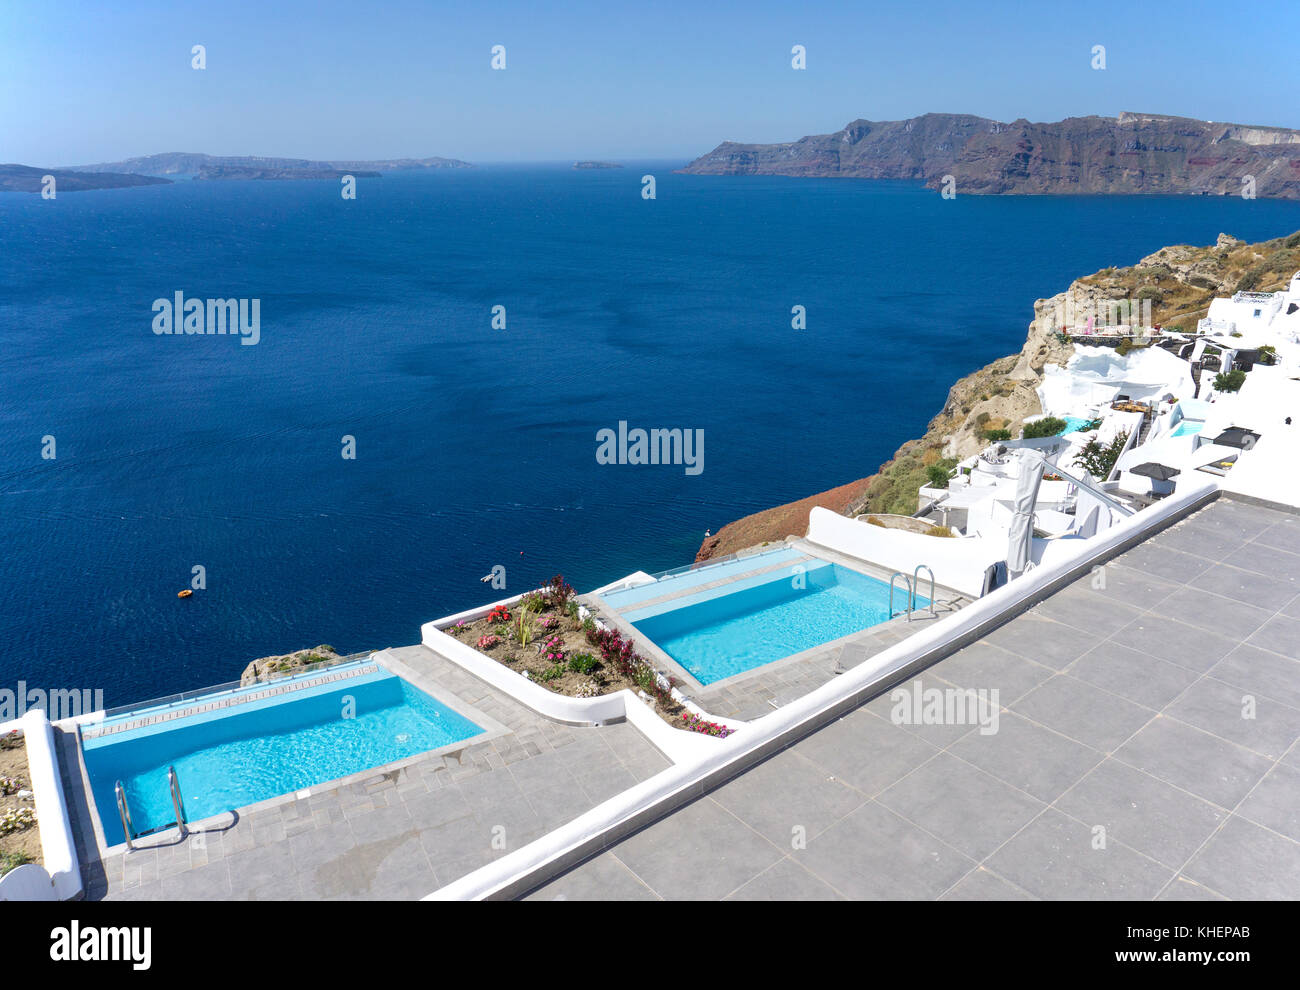 Luxury Hotel with pool at the crater edge of Oia, Santorin island, Cyclades, Aegean, Greece - Stock Image